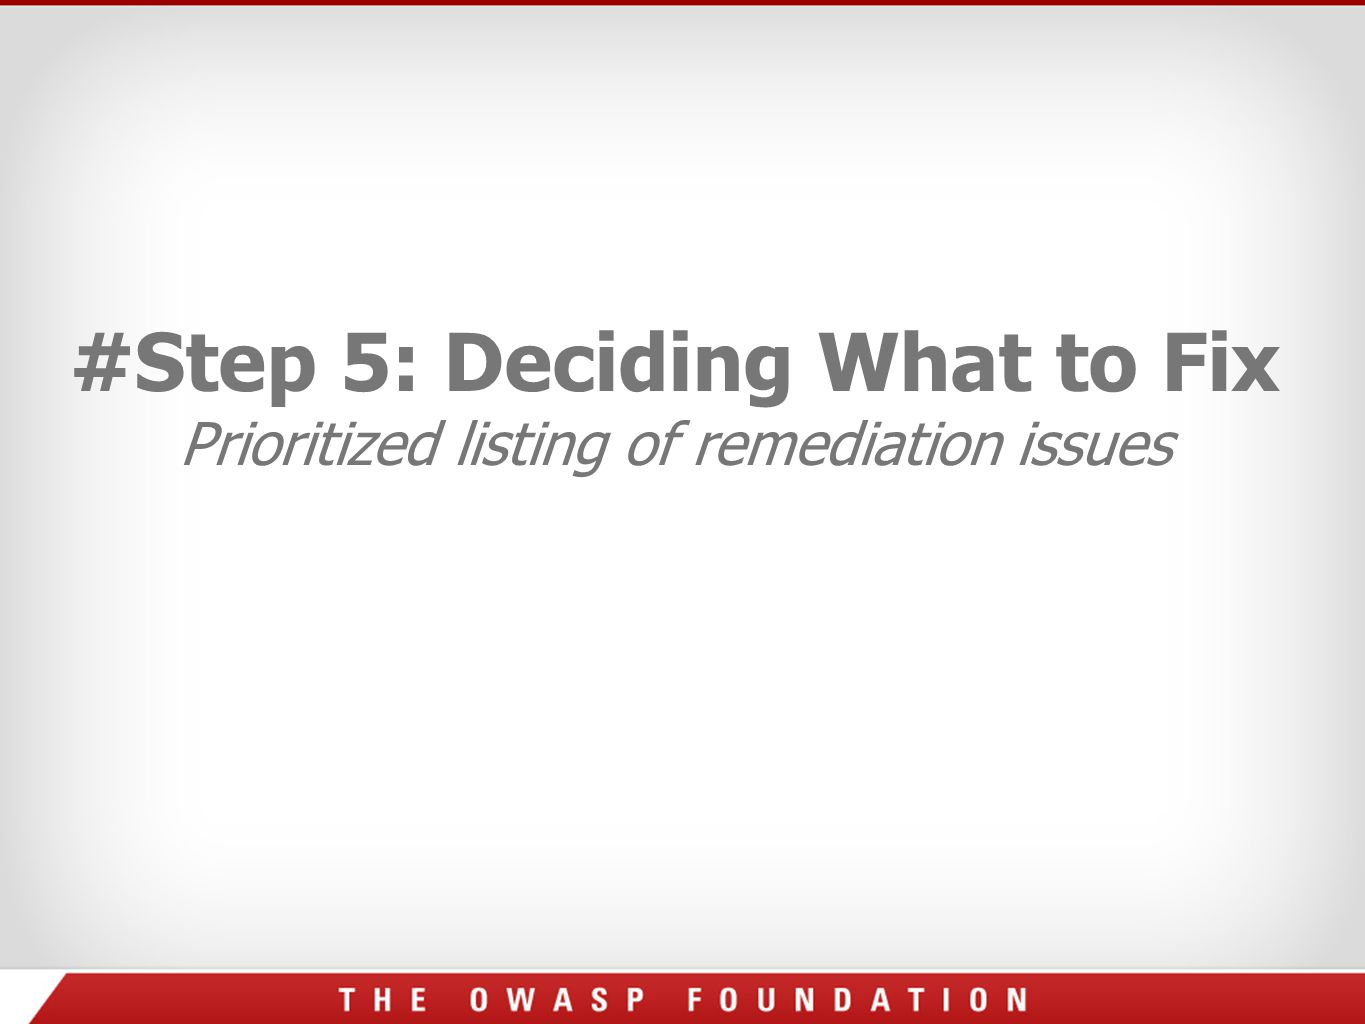 #Step 5: Deciding What to Fix Prioritized listing of remediation issues